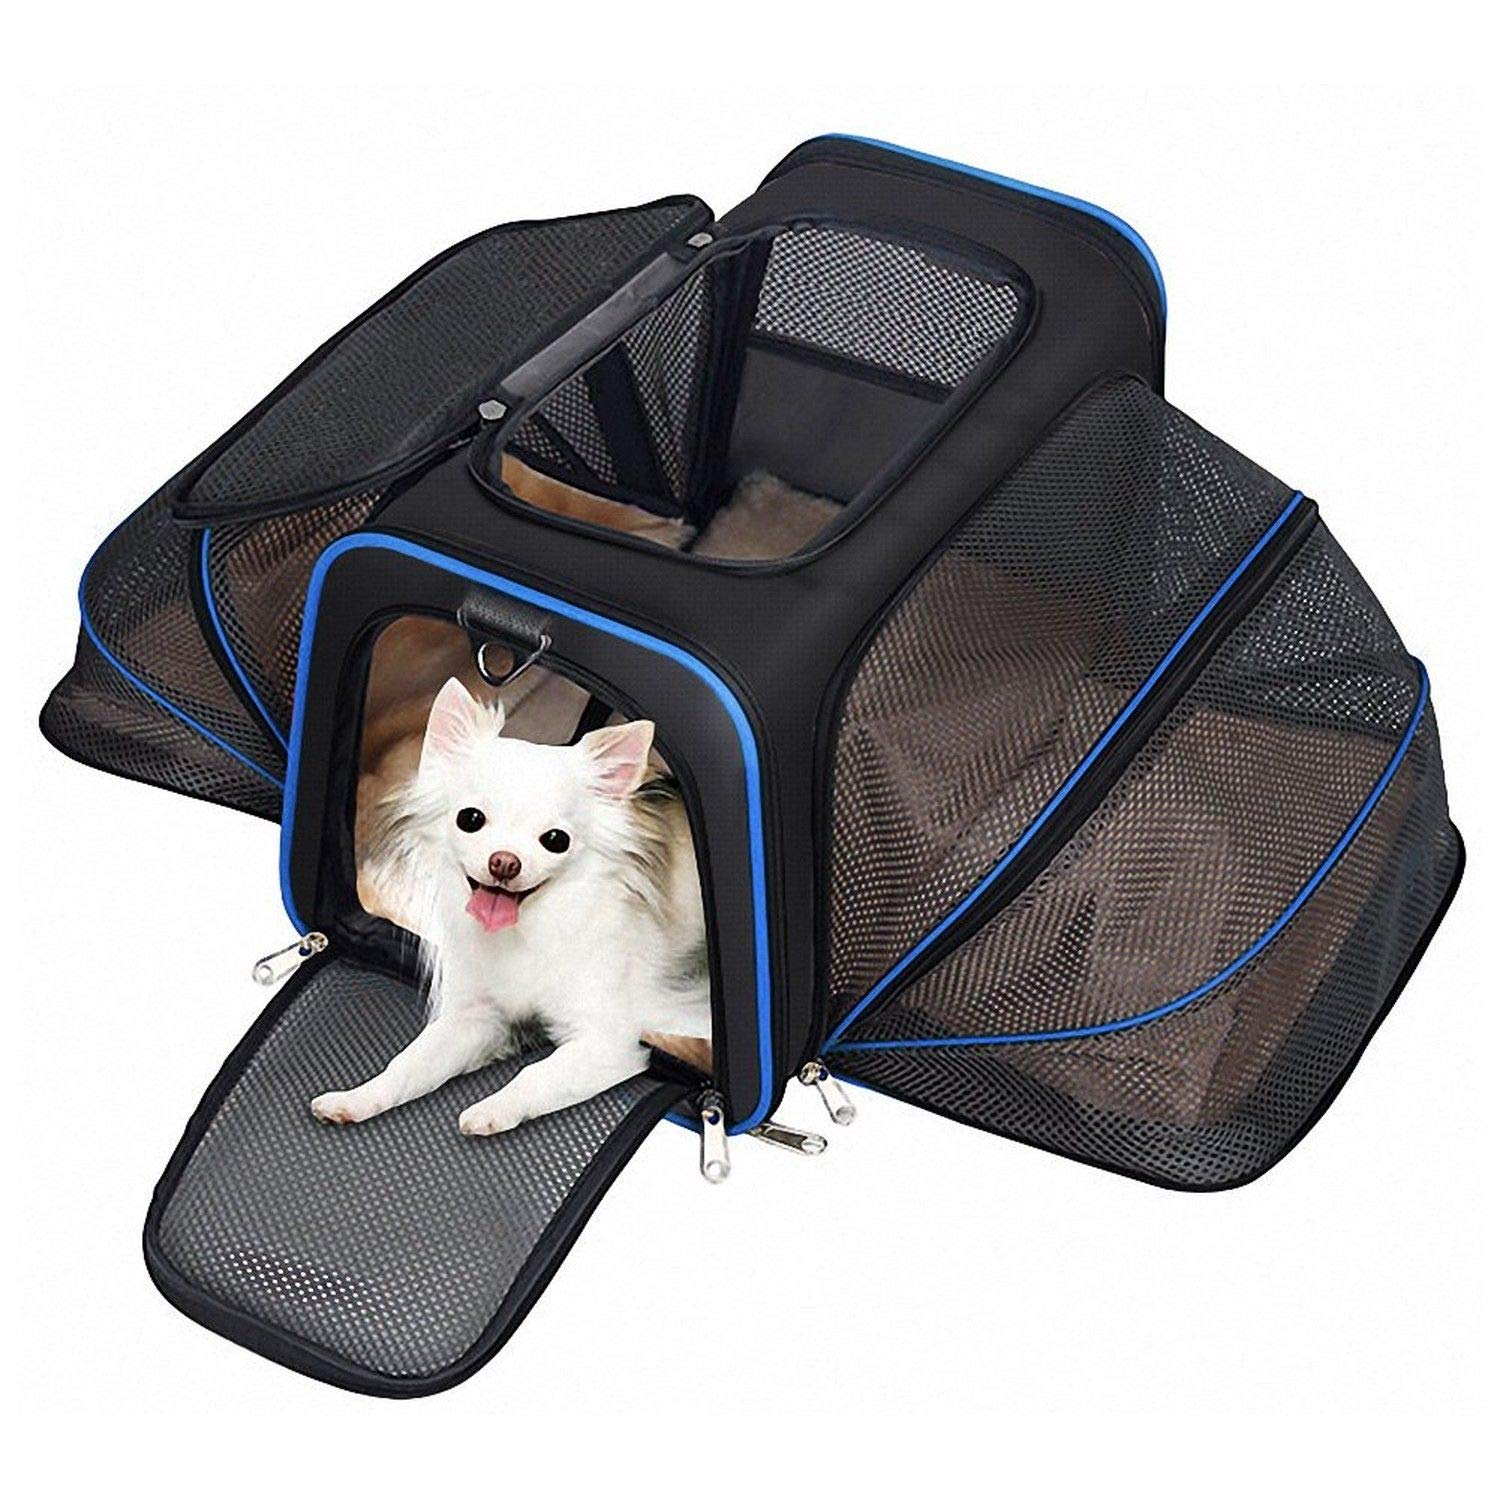 Generic  rrier for Dogs rier and Cats gs and Ca Most Airline Approve ats Soft Sided Expandable Pet Carrier st Airlin Soft Sided